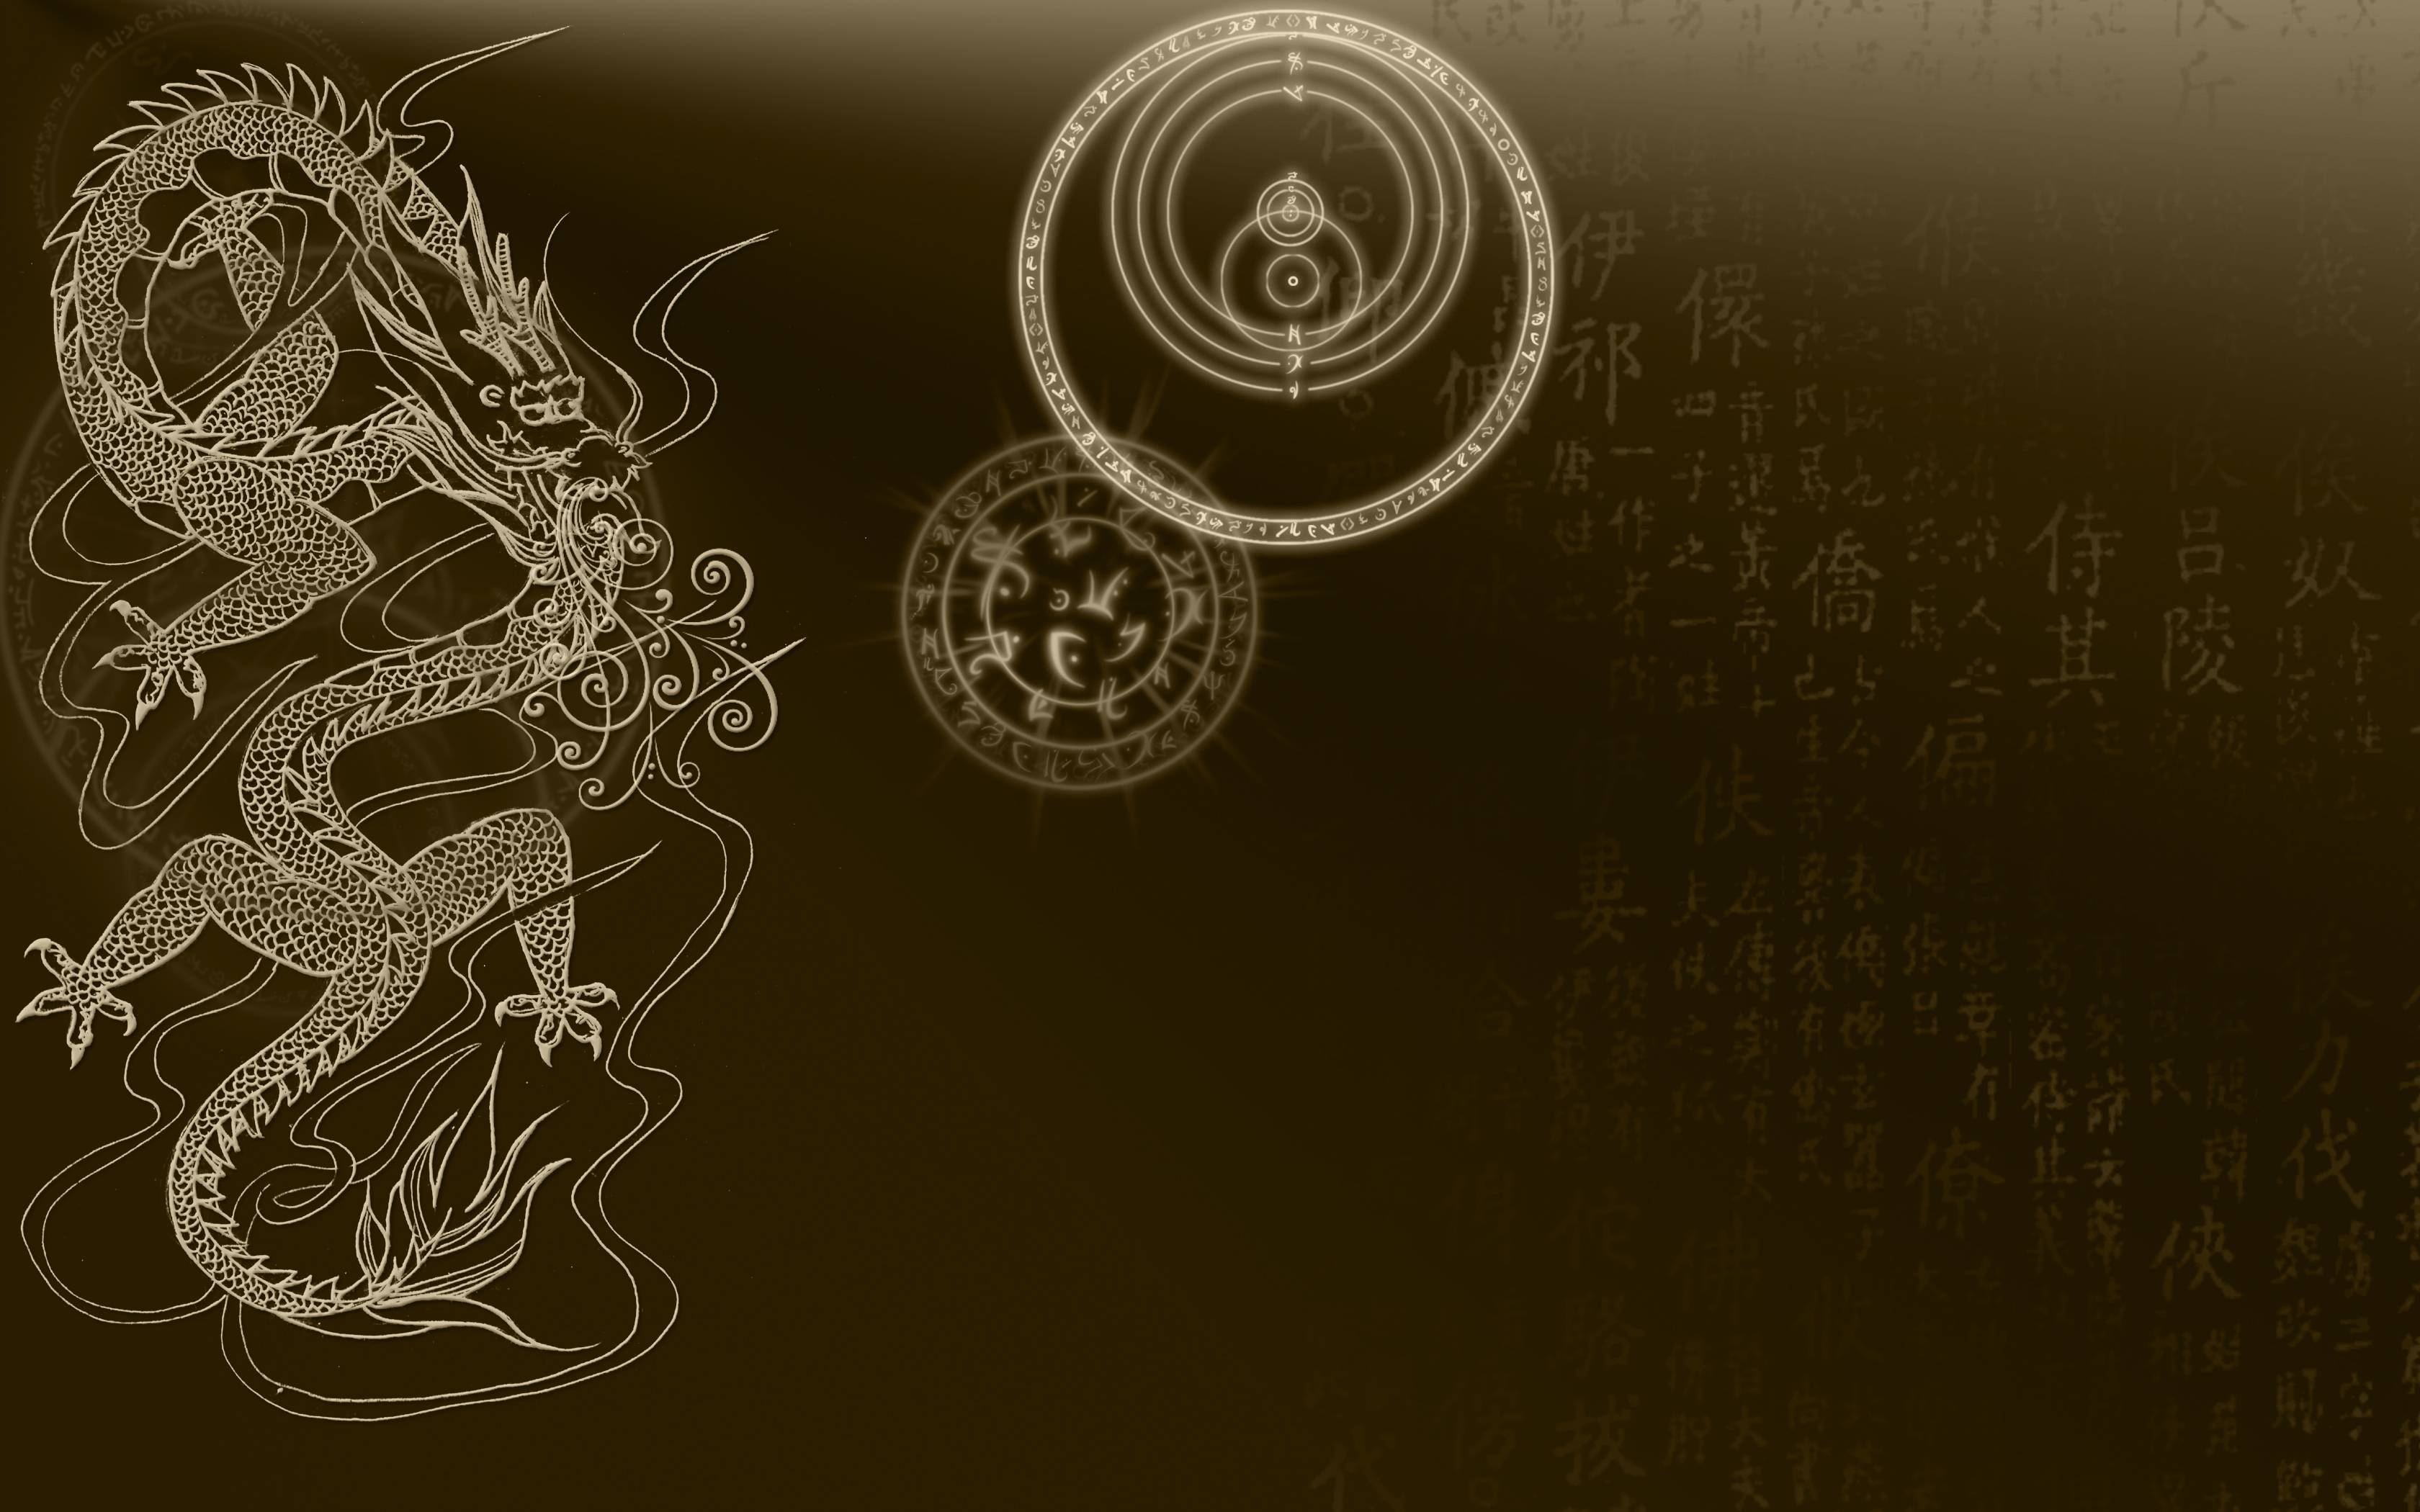 Hd wallpaper dragon - Chinese Dragons Wallpapers Chinese Dragons Background